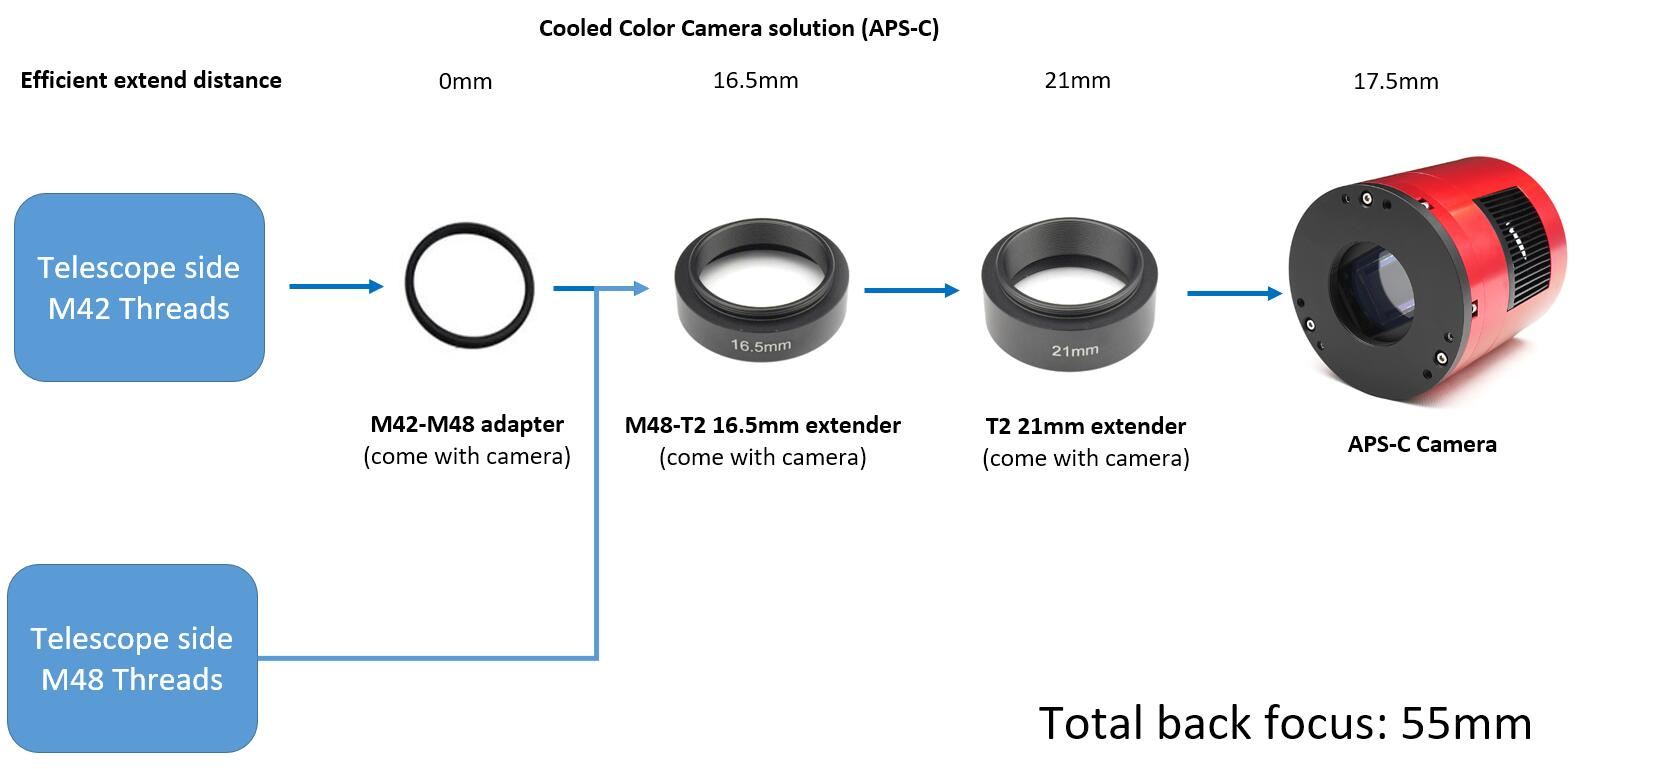 Cooled Color Camera solution(APS-C)